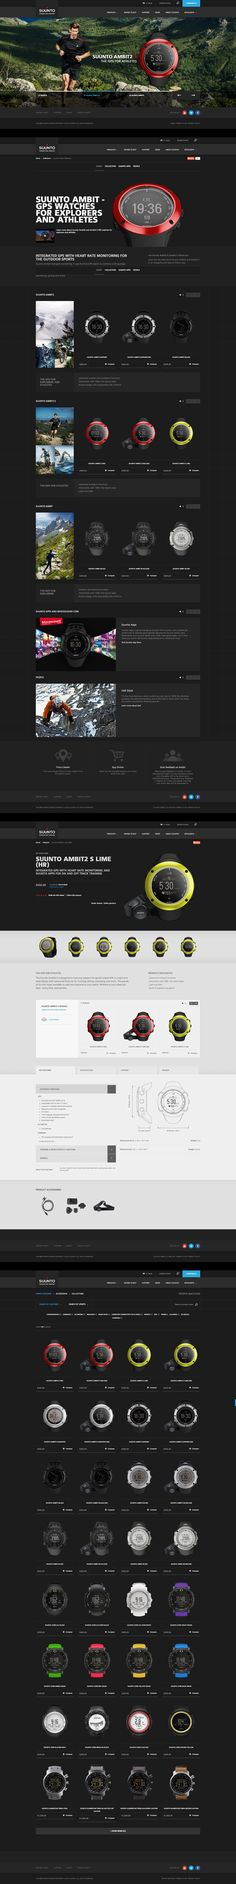 website suunto - http://www.suunto.com/en-US/Products/Sports-Watches/Suunto-Ambit2-S/Suunto-Ambit2-S-Lime-HR/